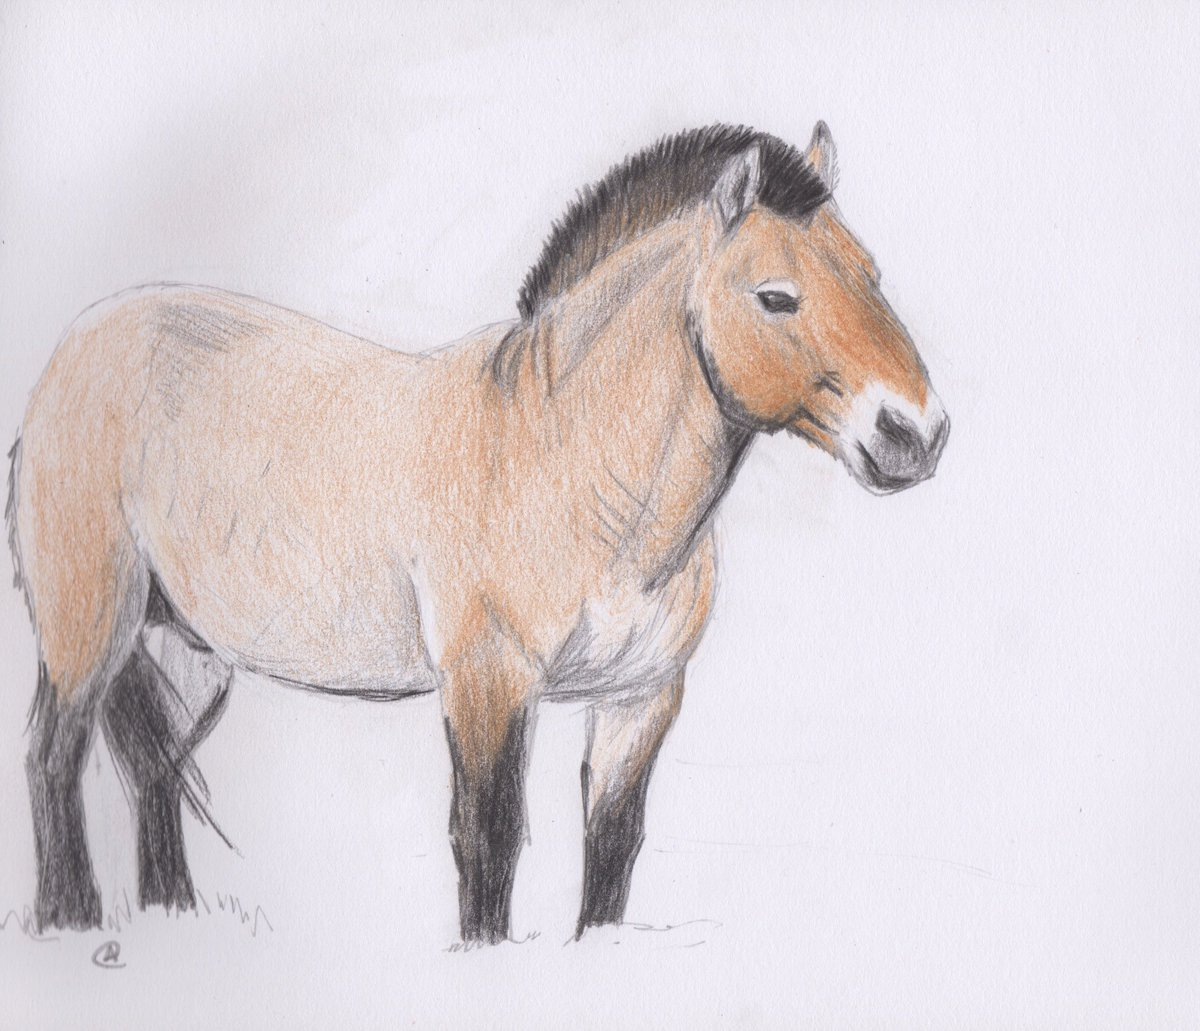 It&#39;s been a while since I&#39;ve done a physical #drawing! A Przewalski&#39;s horse, drawn with #polychromos #pencils <br>http://pic.twitter.com/onq9885AyP